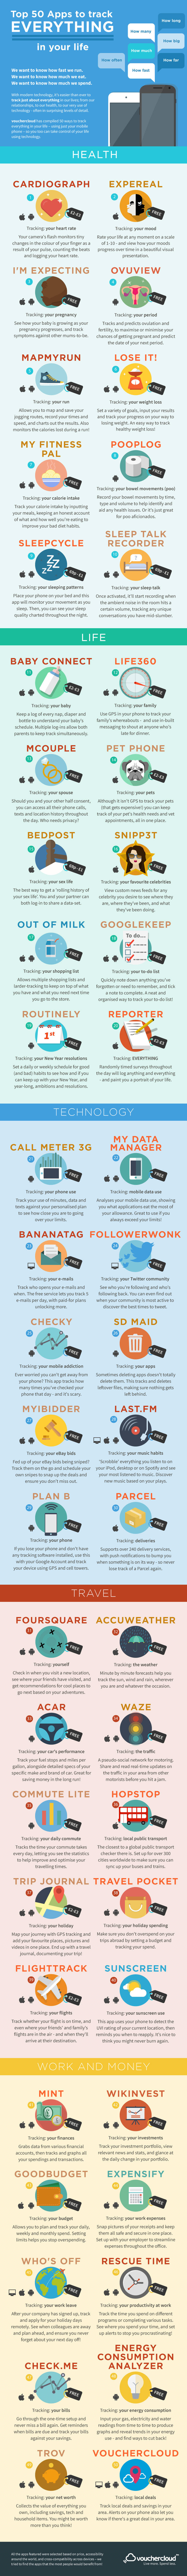 50-Life-Tracker-Apps-for-Android-and-iOS-Infographic